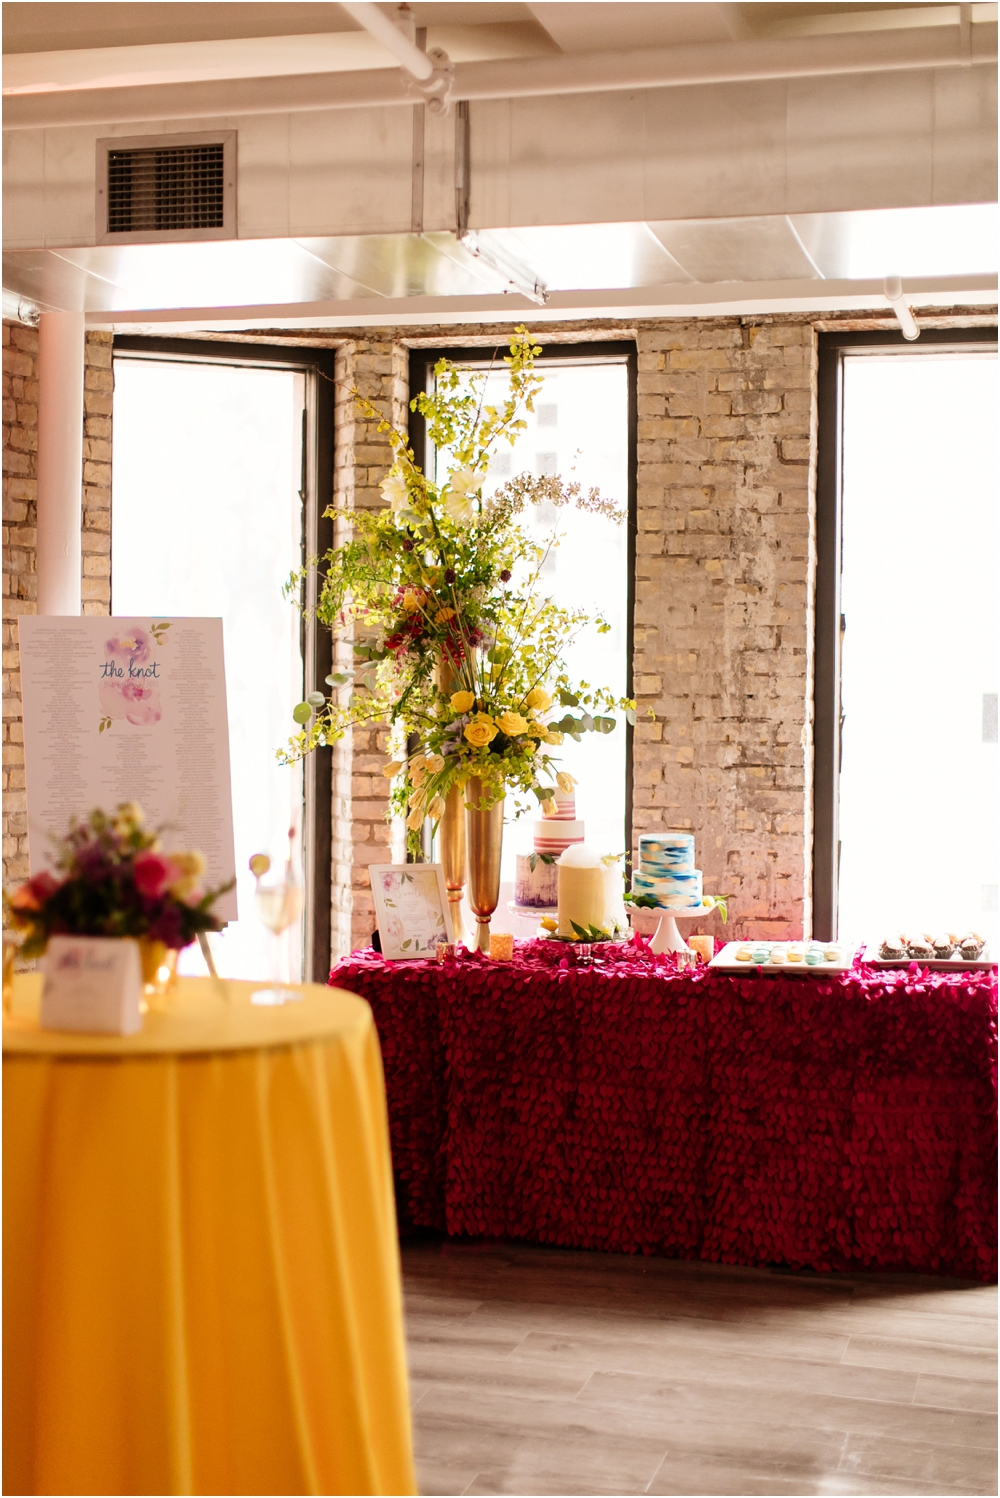 The_Knot_Pro_Minnesota_Mixer_Minneapolis_Wedding_Planner_1019.jpg